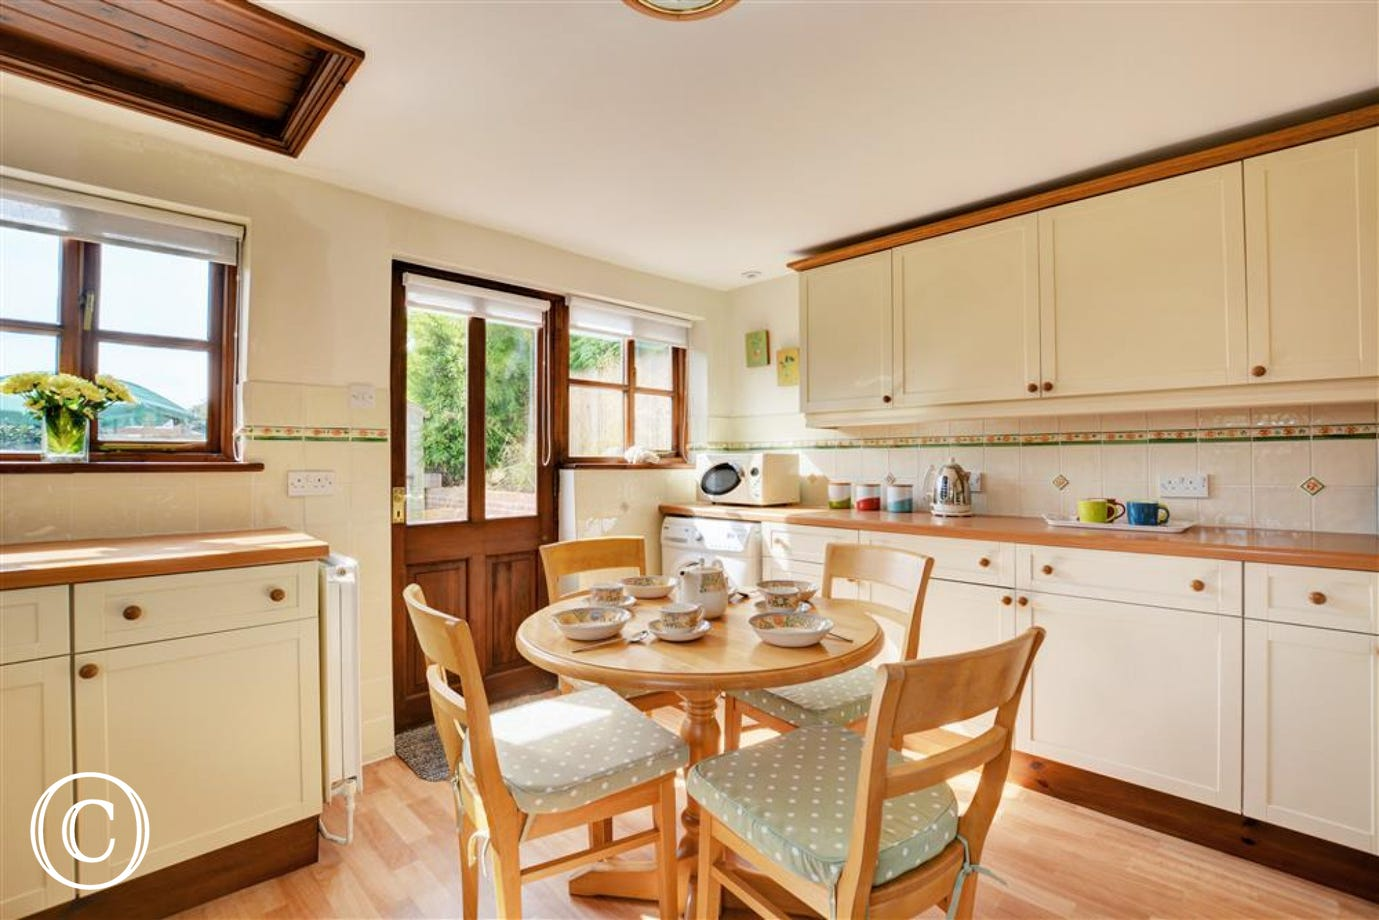 Kitchen equipped with all needed for your self catering break